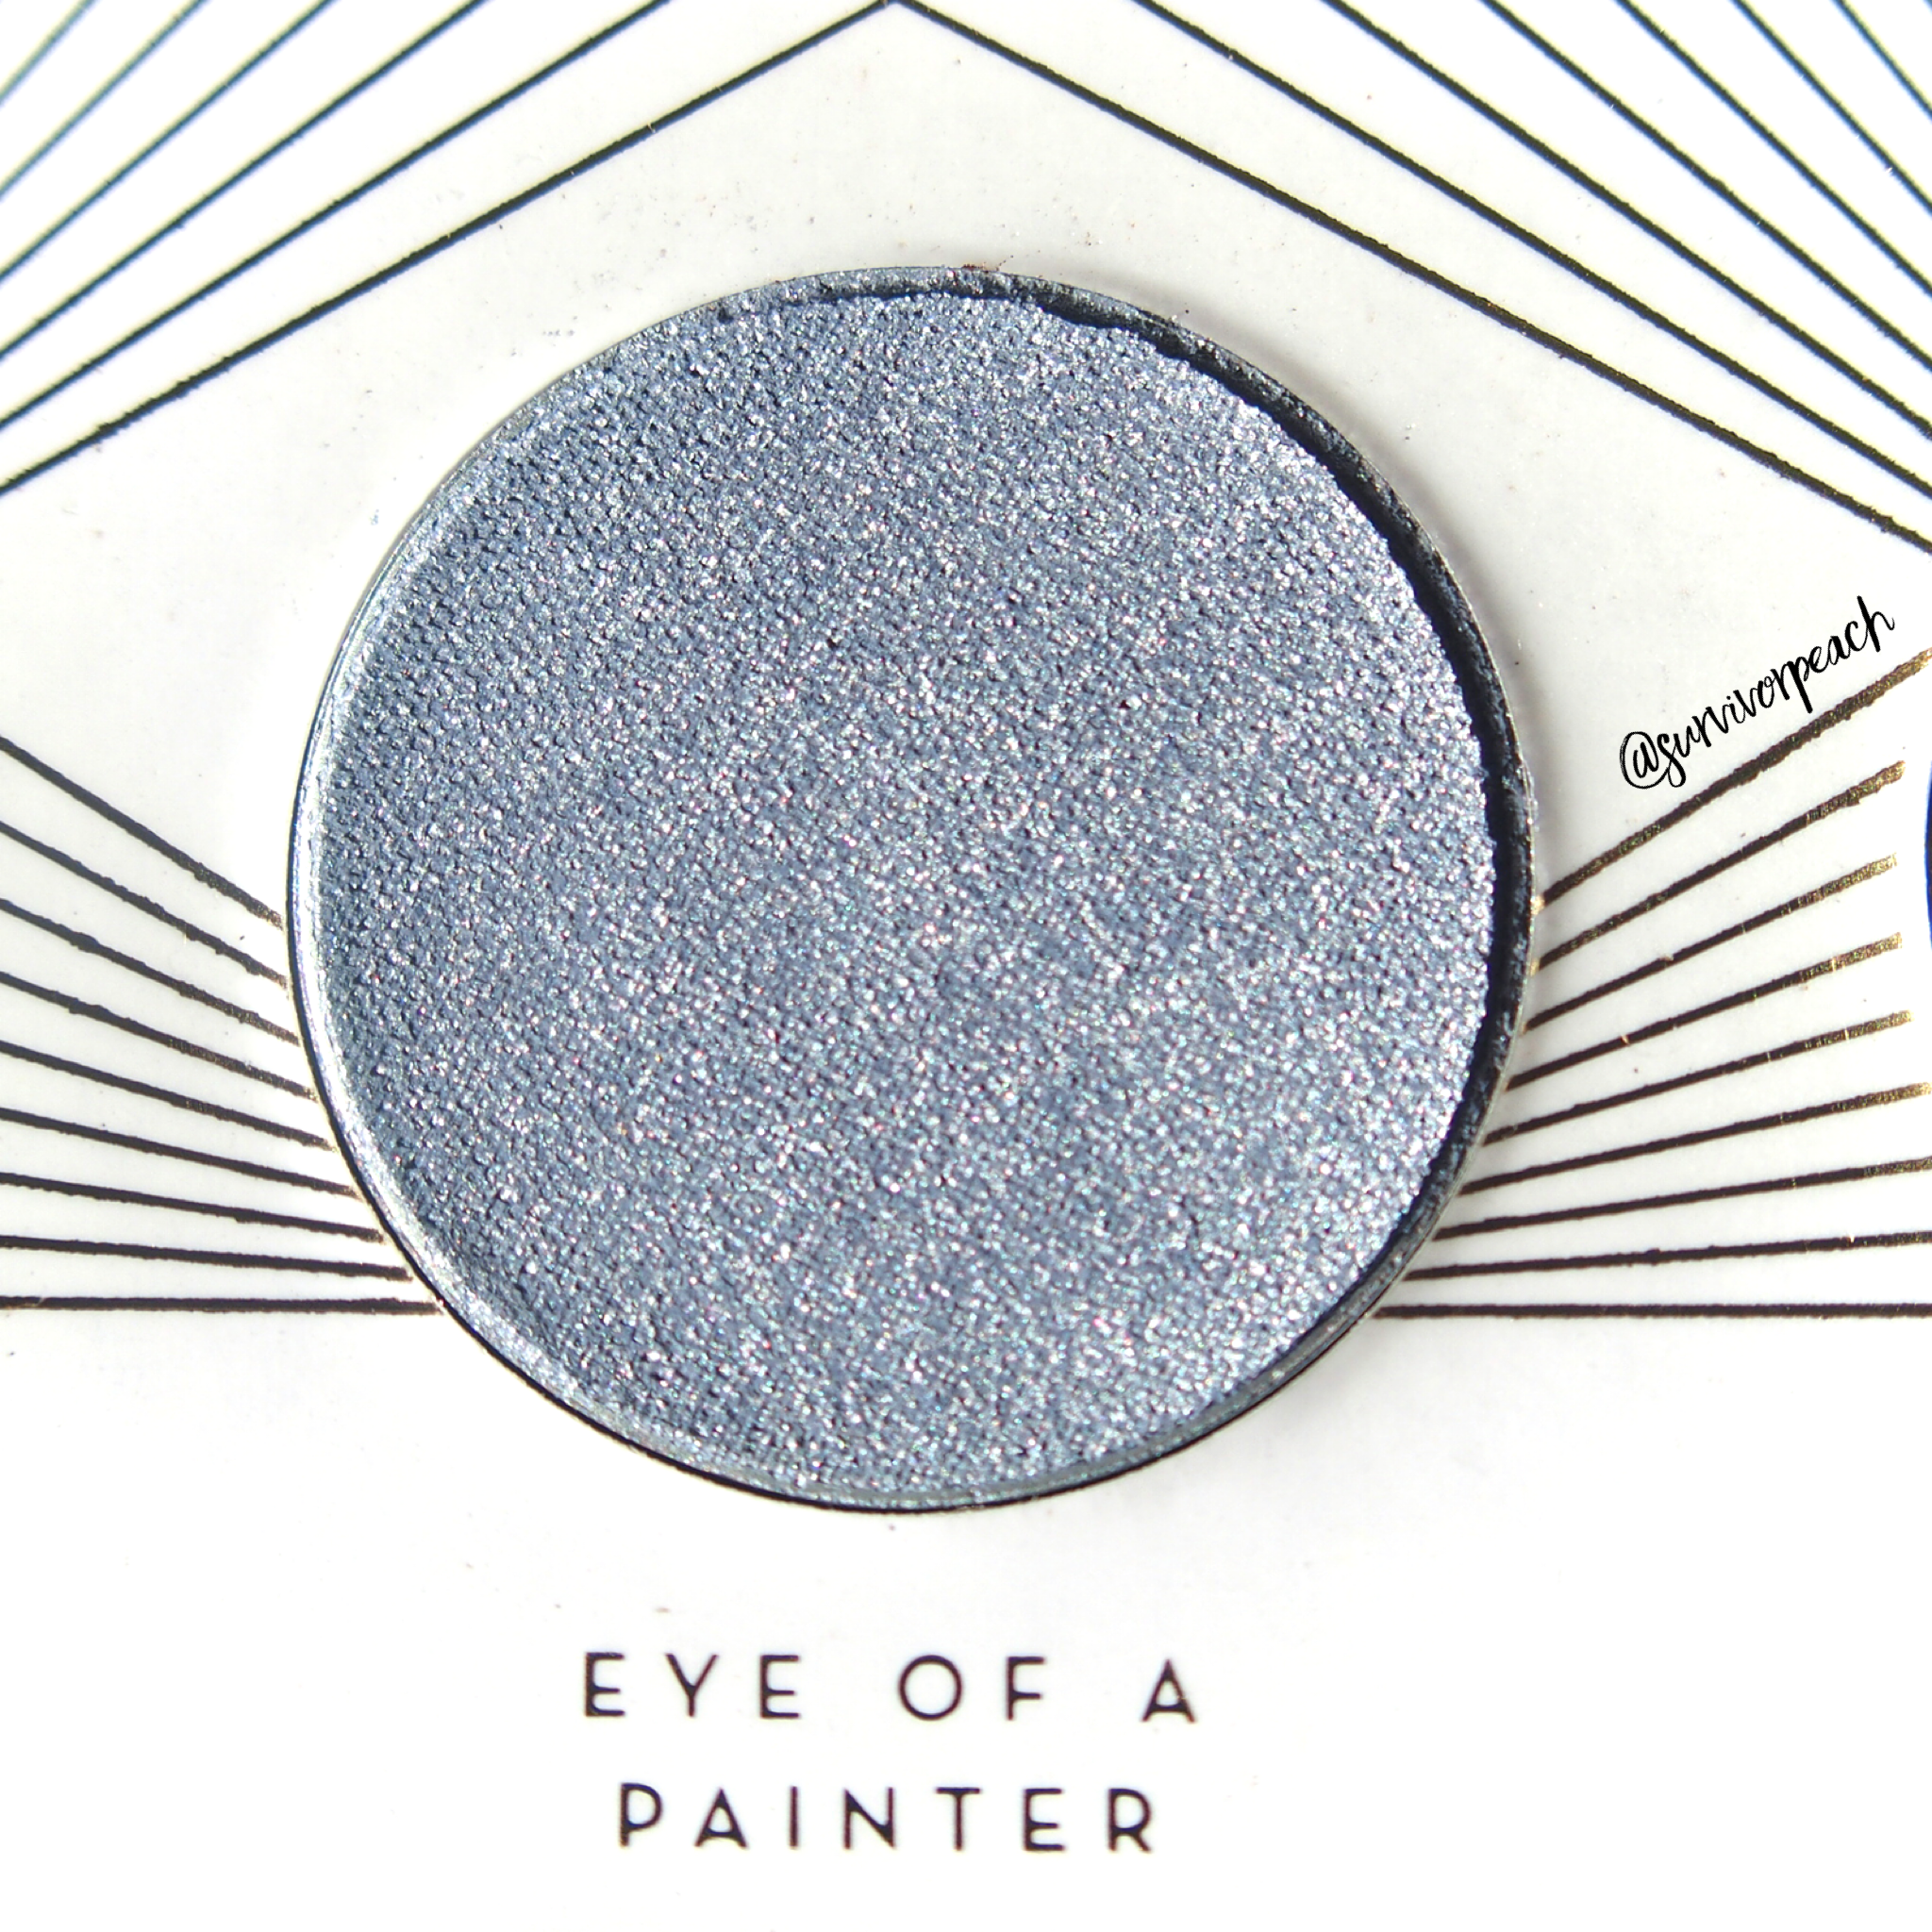 Zoeva Screen Queen Eyeshadow palette - Eye of a Painter